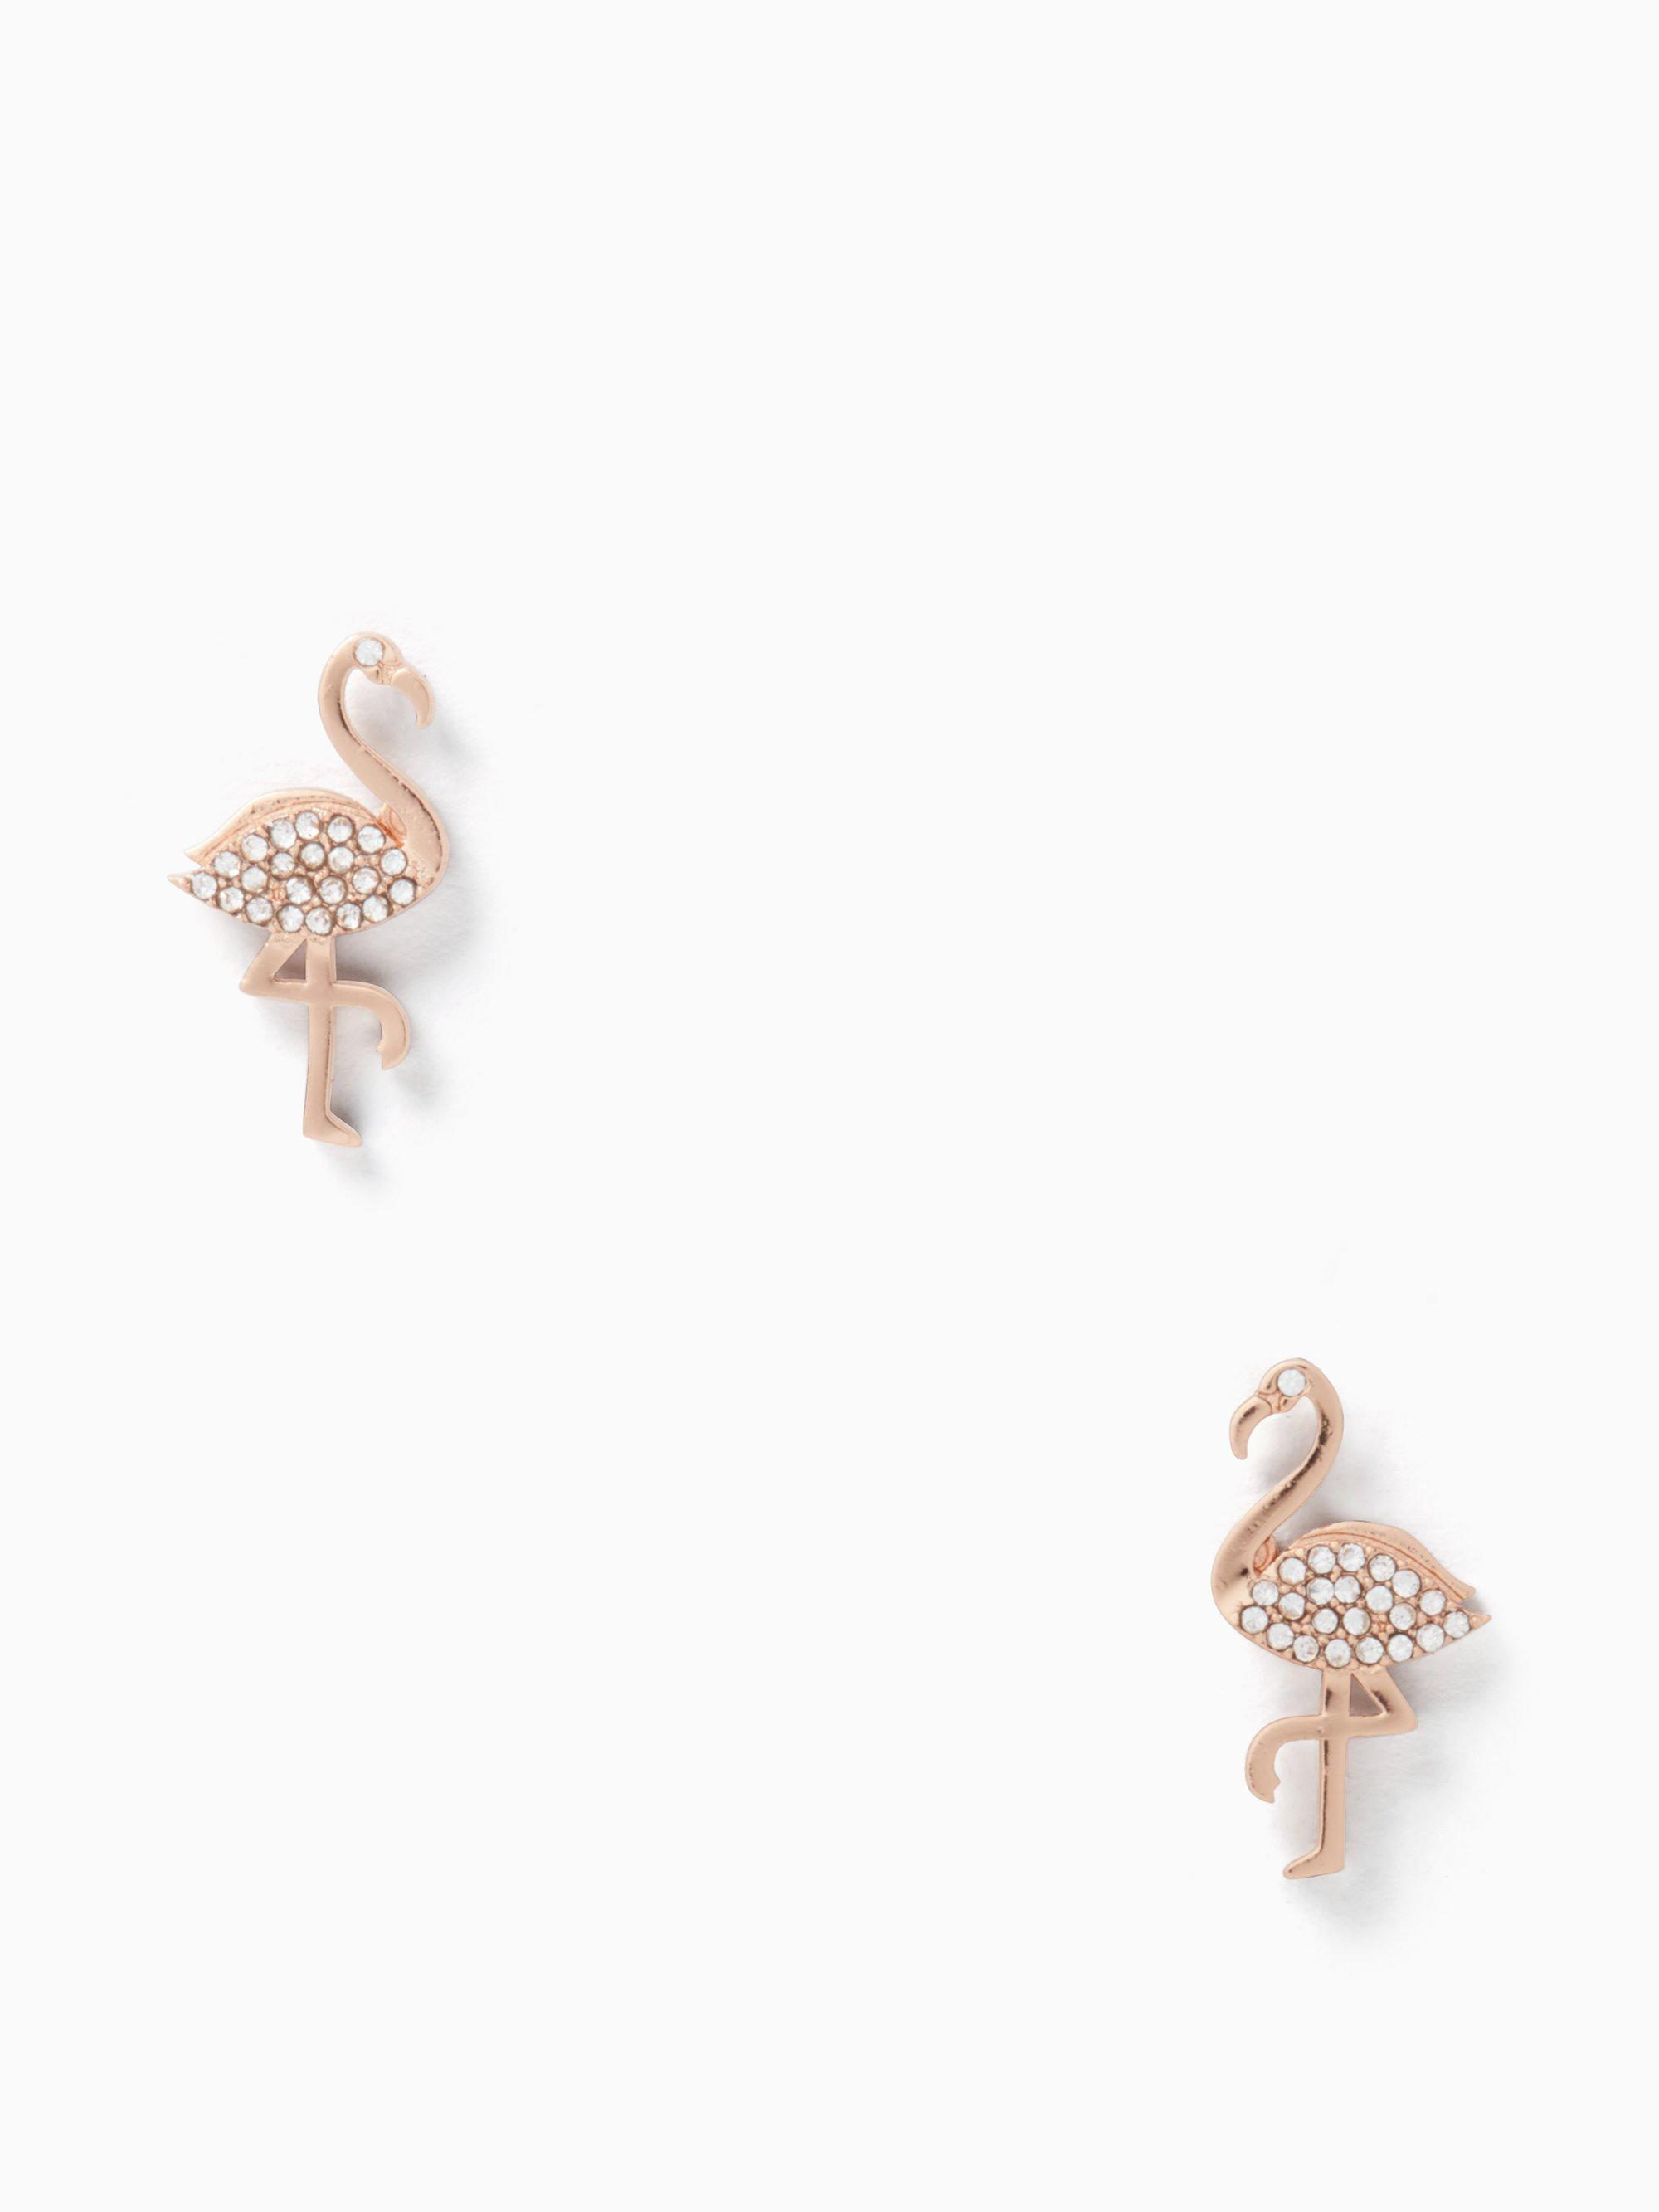 By The Pool Flamingo Kate Spade Kate Spade Metallic By The Pool Flamingo Studs